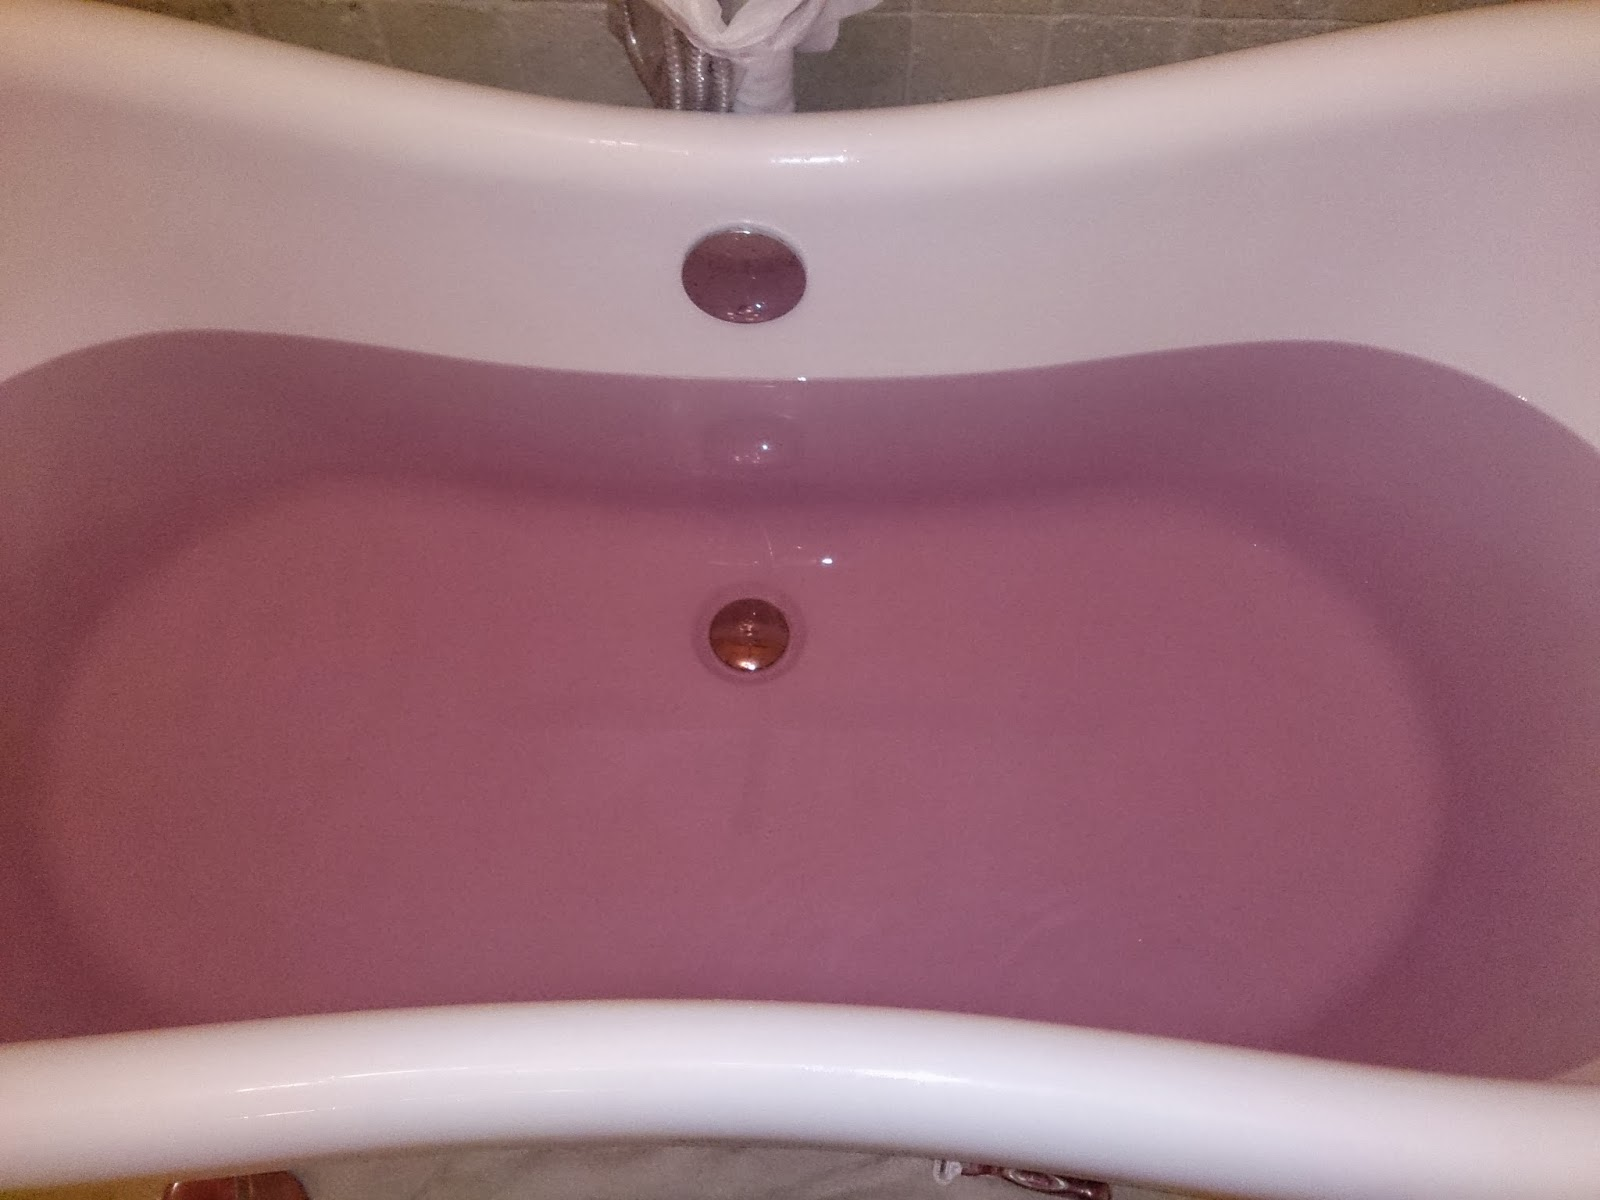 lush bath bombs ballistic bubble bar pink purple space girl mini comforter think pink creamy candy relax